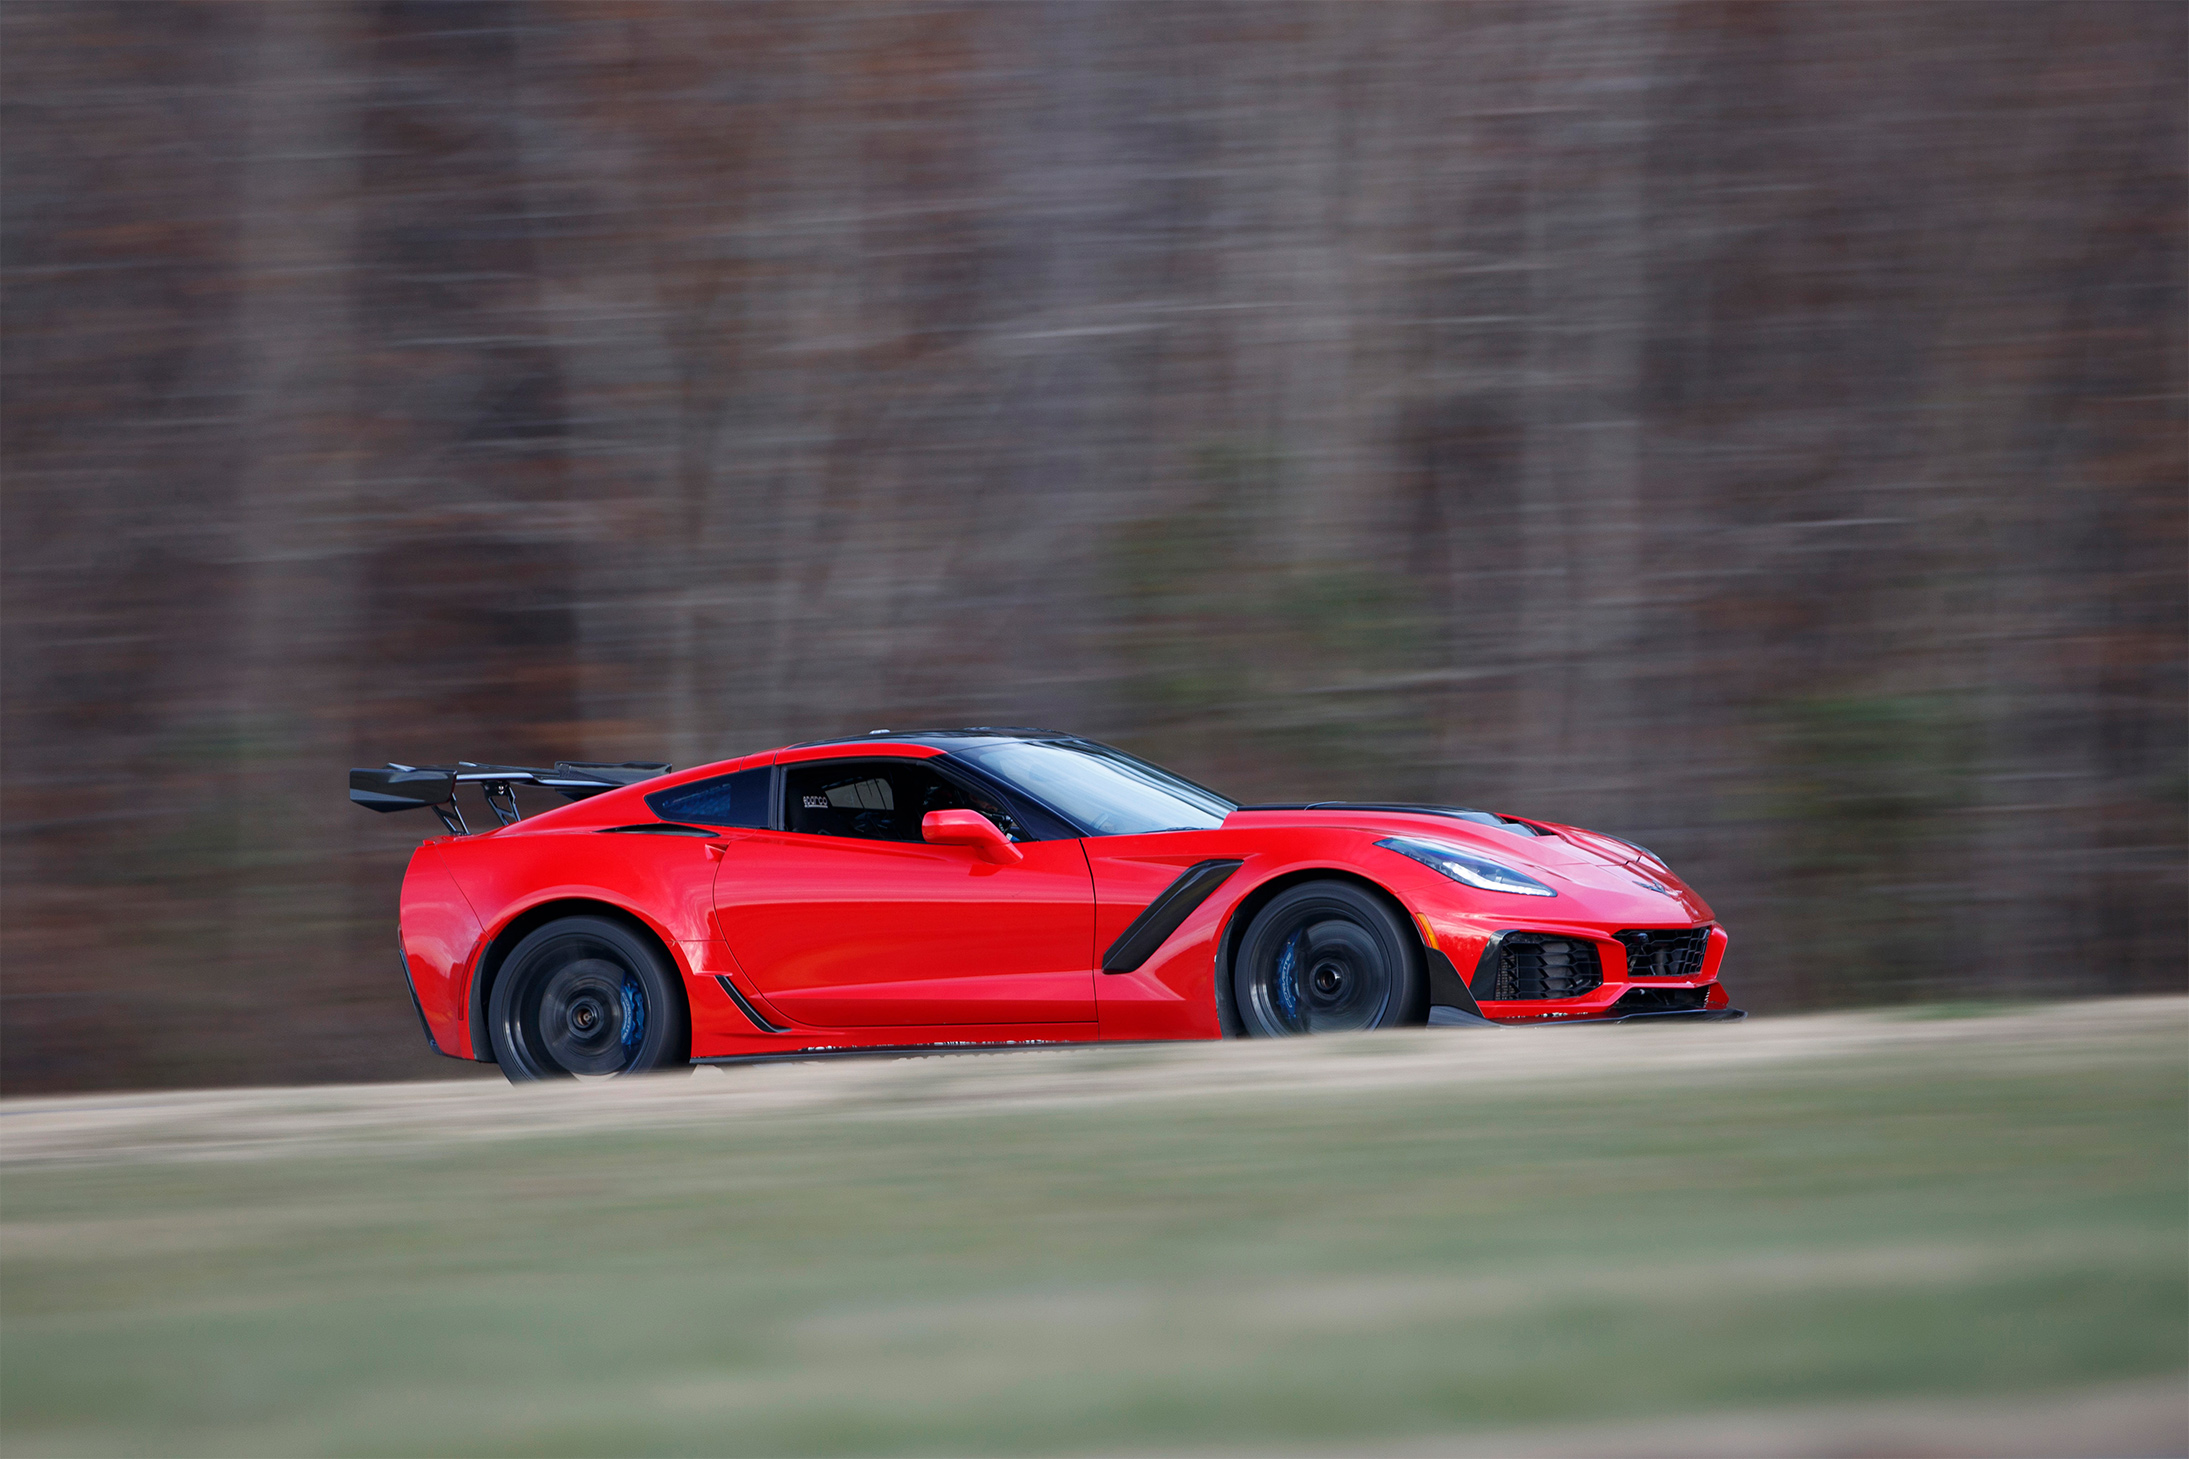 TrackWorthy - 2019 Chevrolet Corvette ZR1 VIR Lap Record Holder (2)